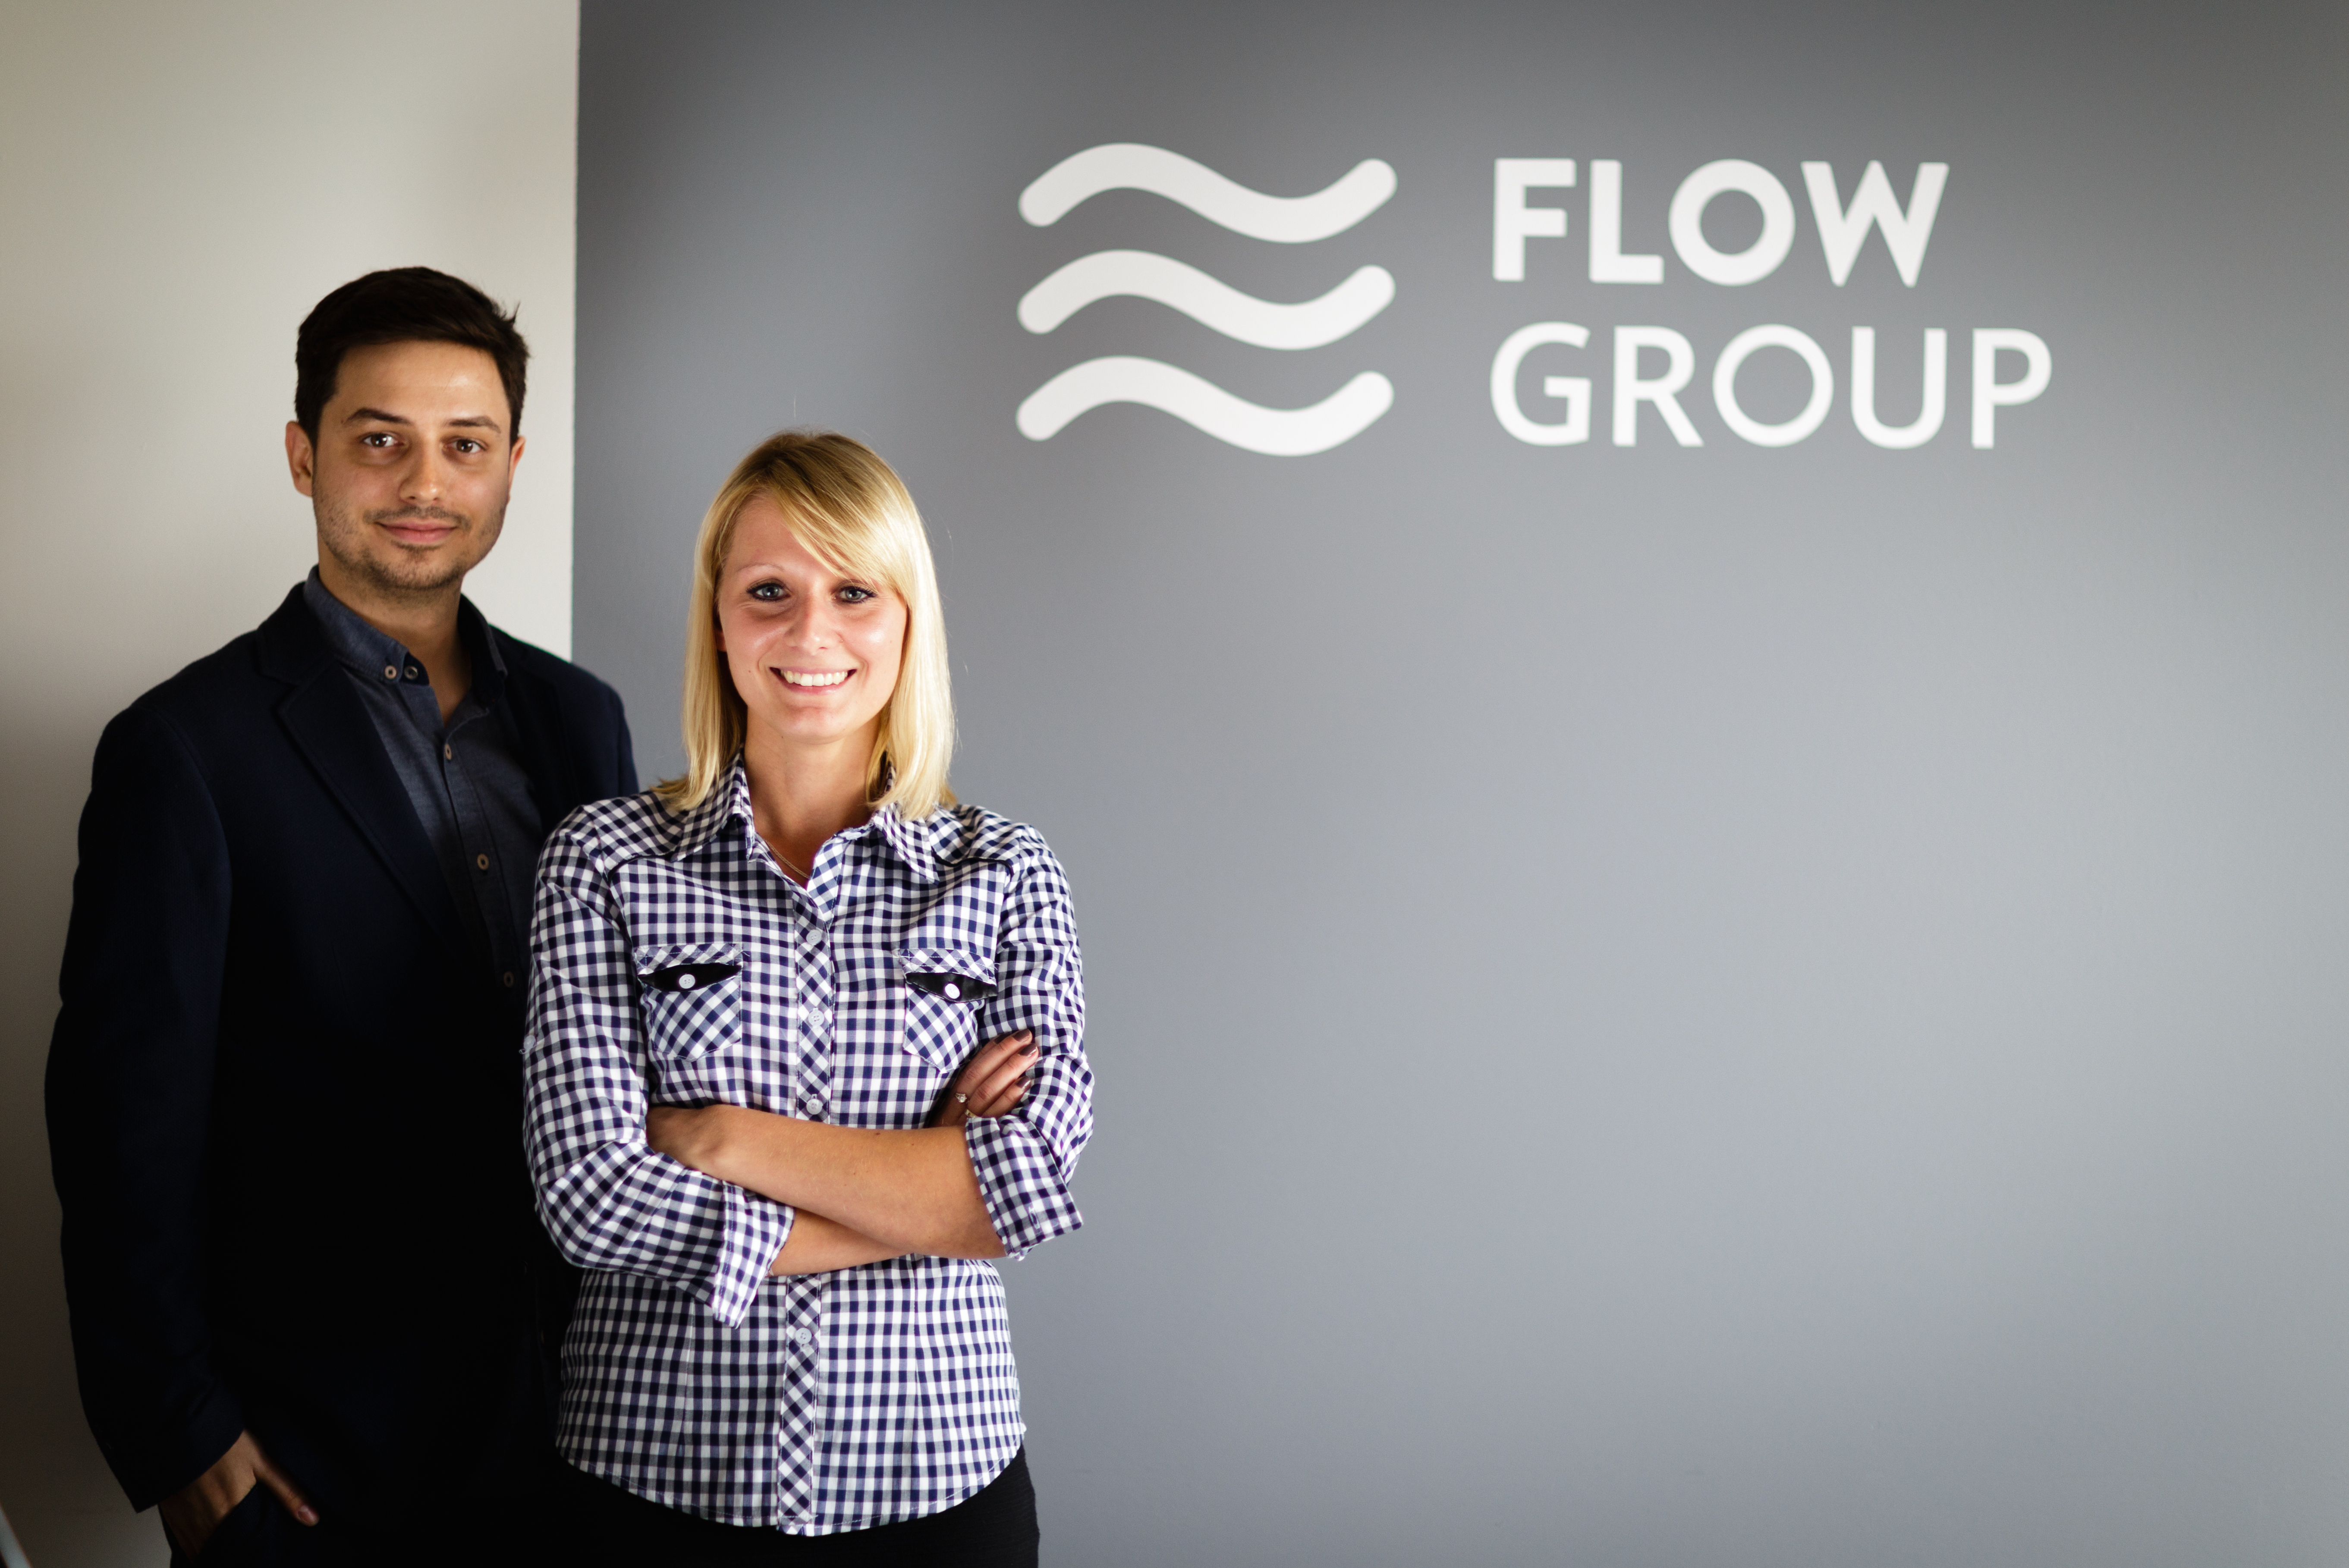 FLOW GROUP-016-kopia